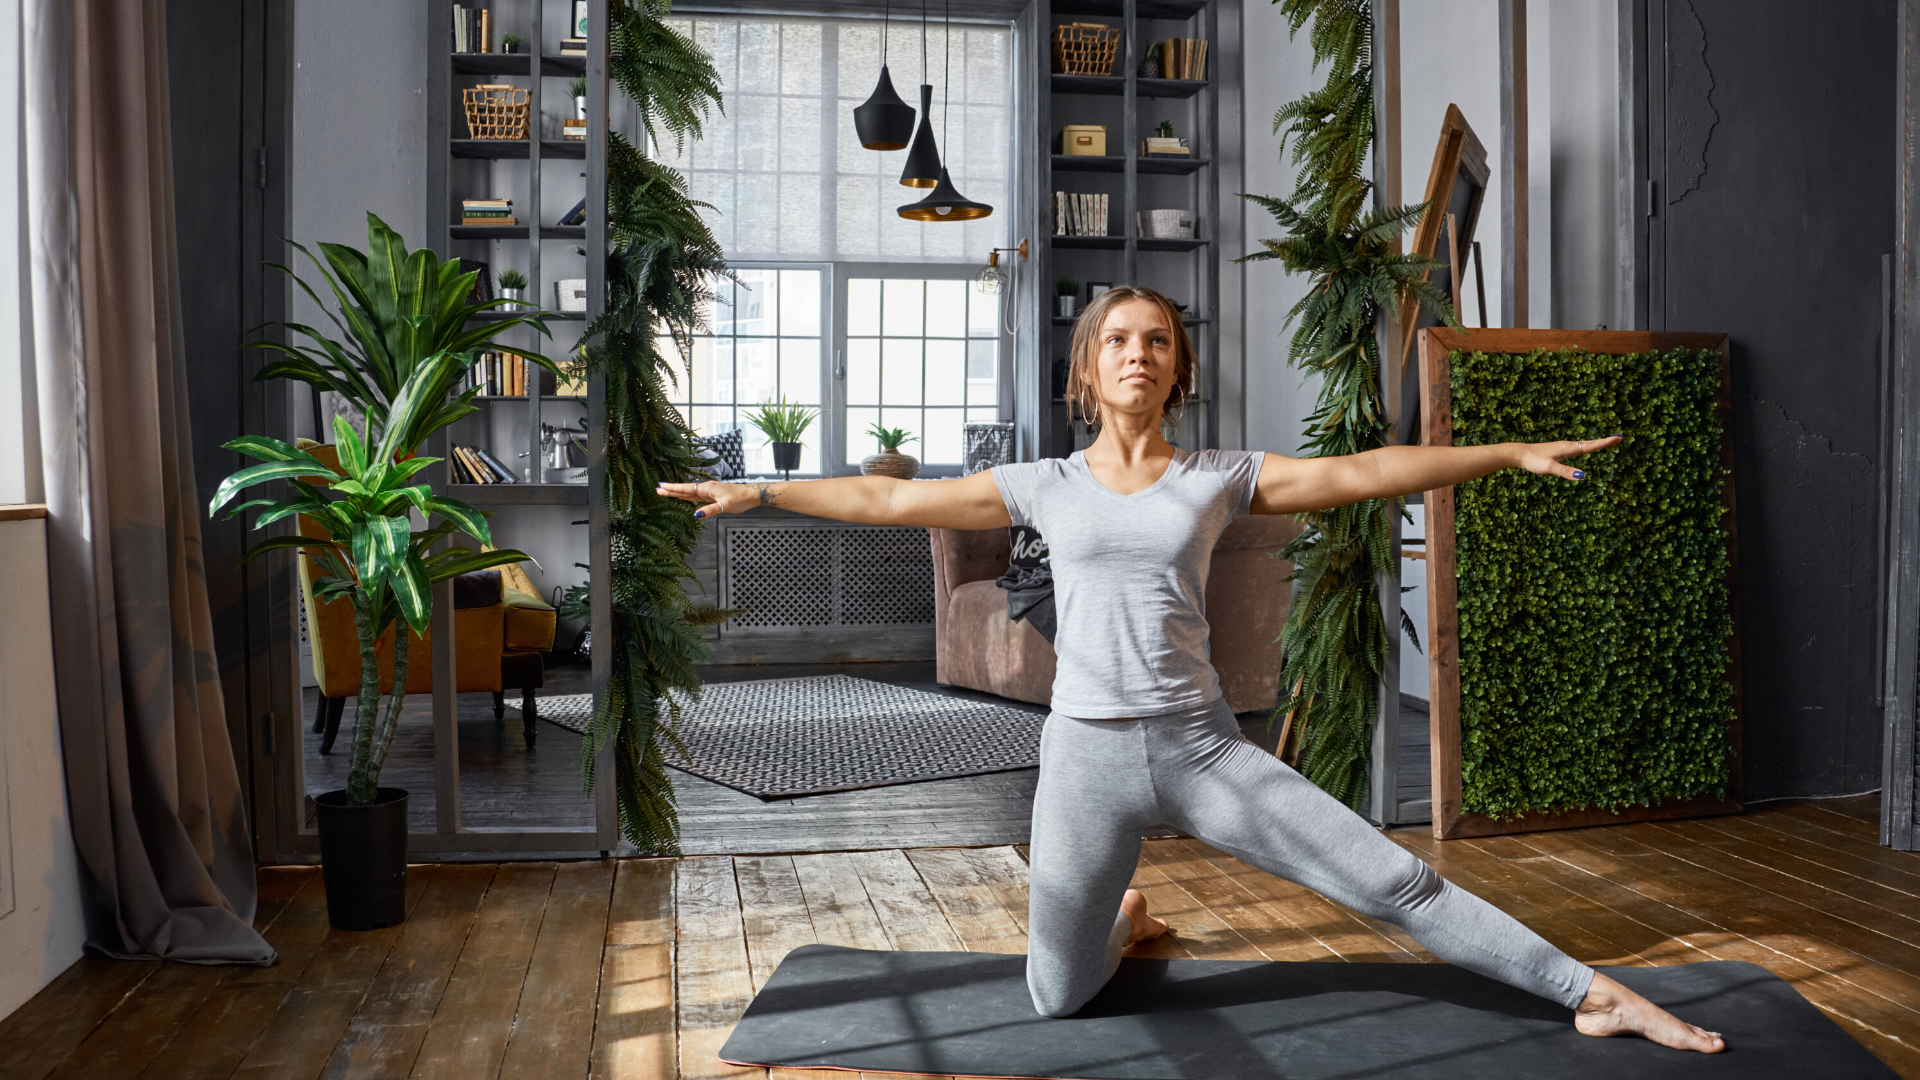 Woman practicing yoga gate pose at home.